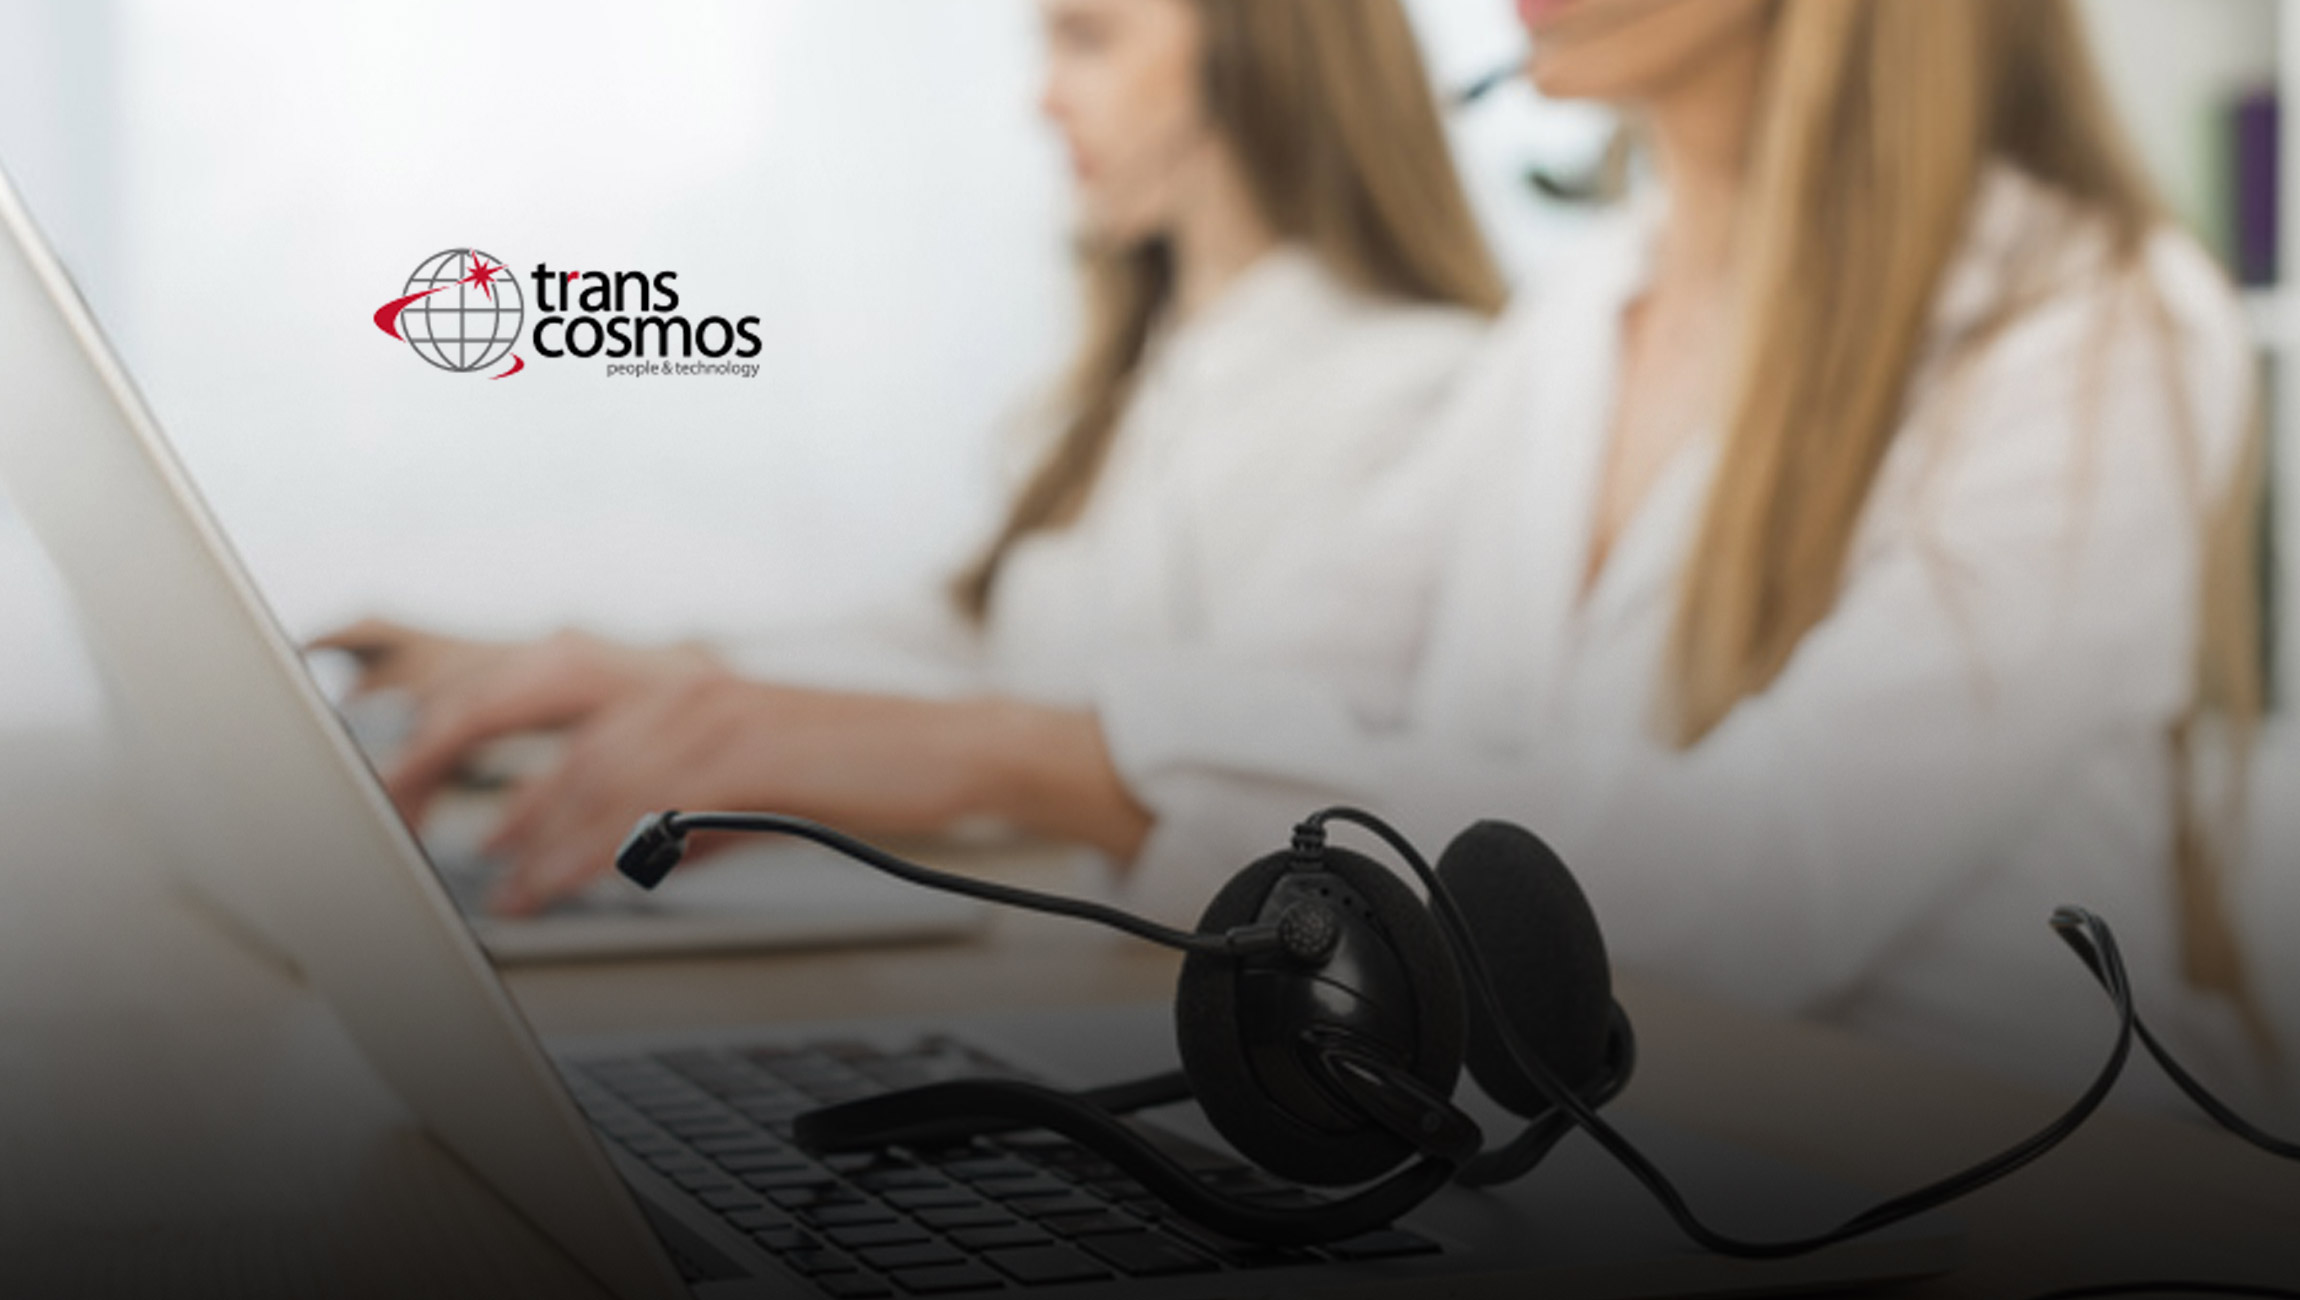 transcosmos Launches Work From Home Contact Center Services in Taiwan